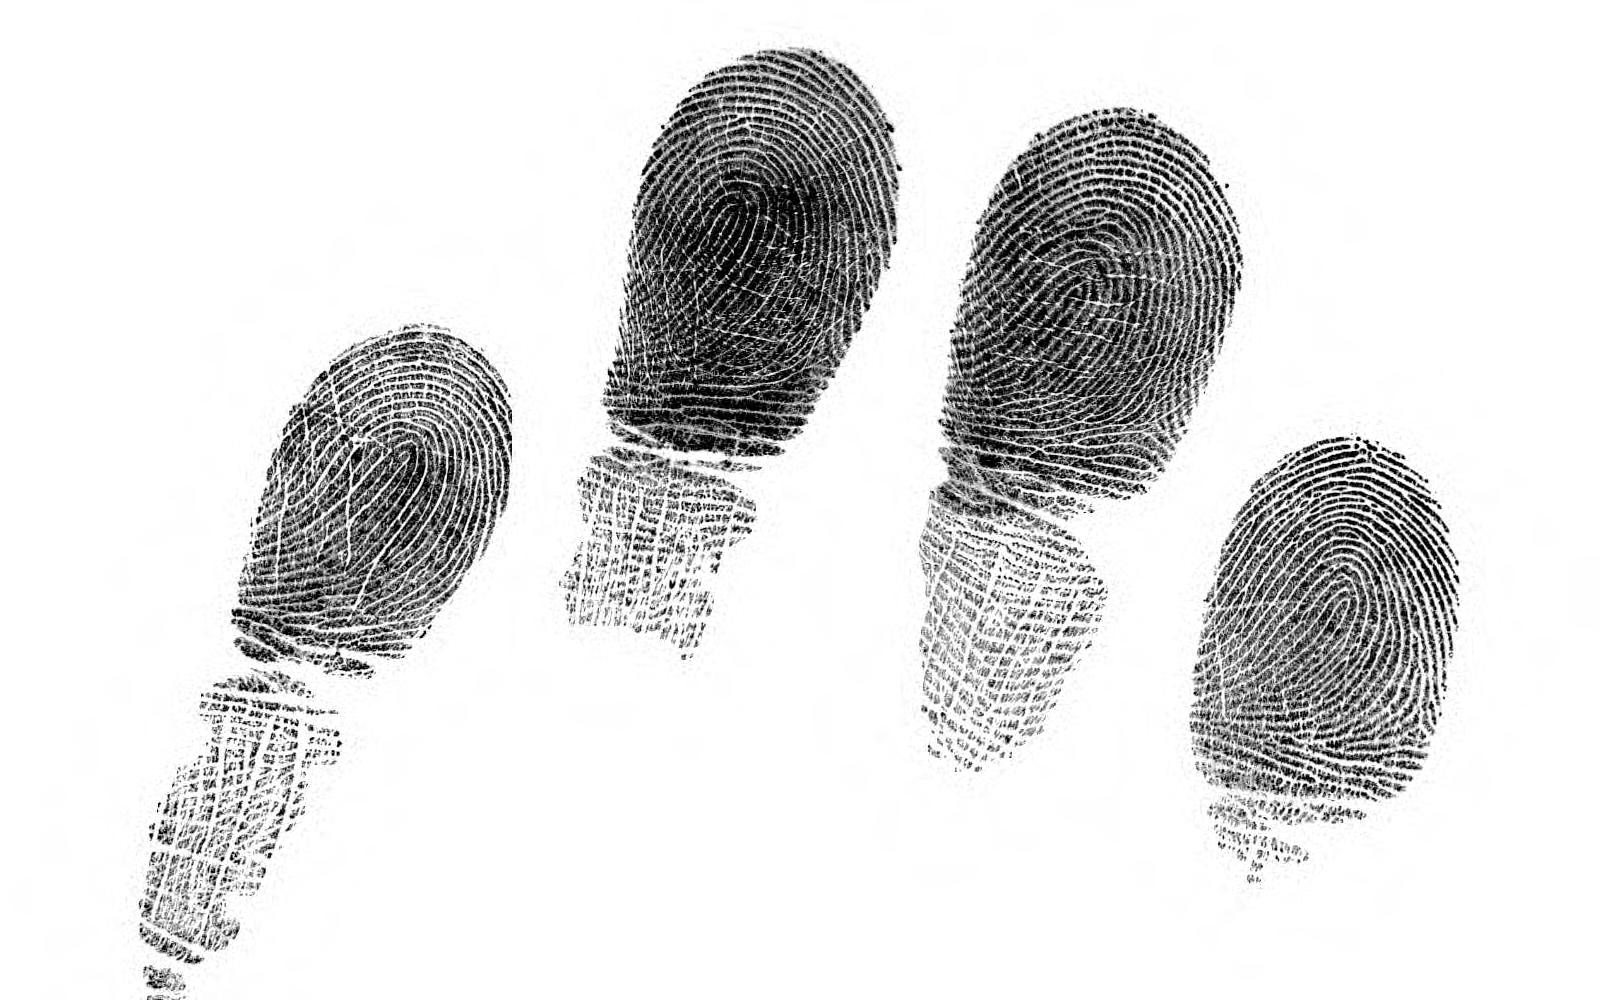 Fingerprint Patterns And The Analysis Of Gender